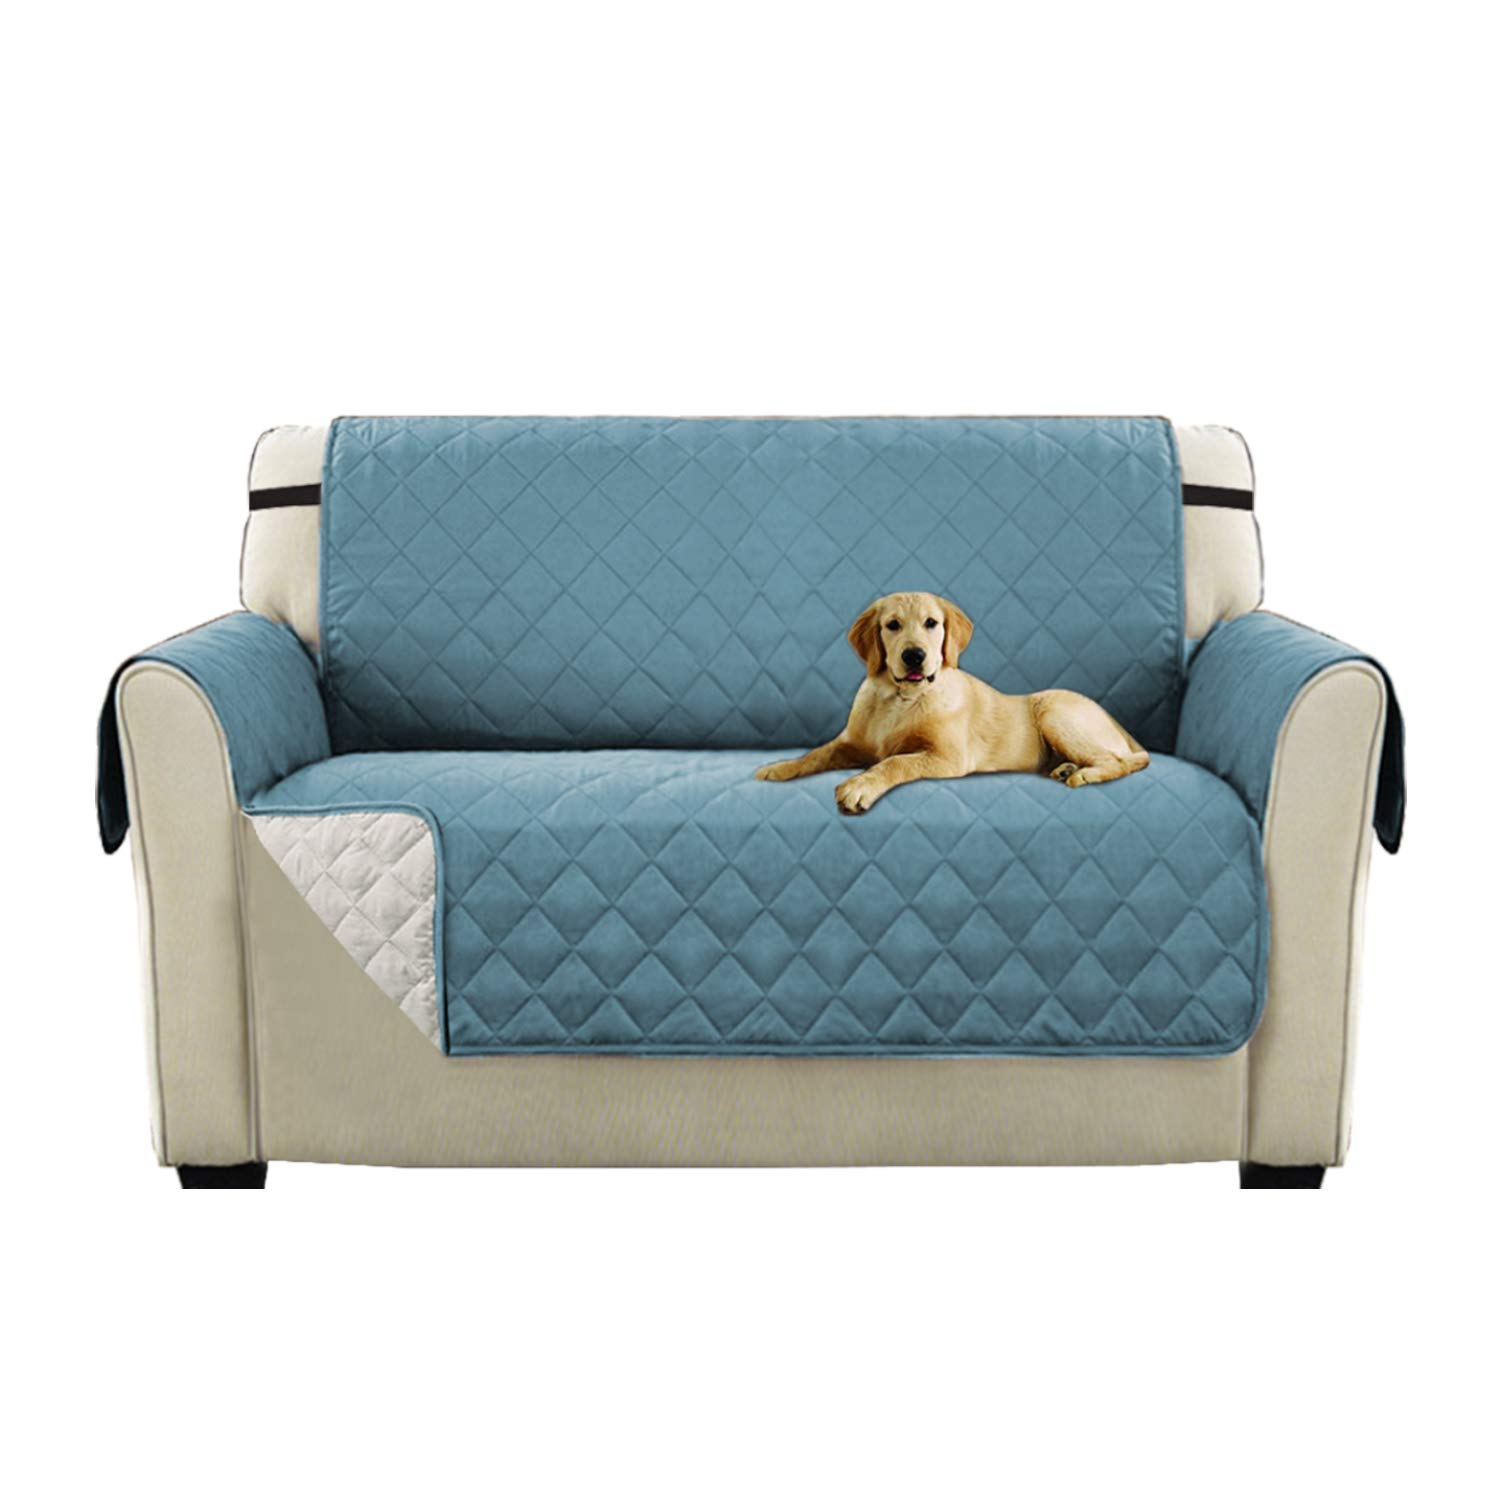 Turquoize Luxurious Plush Reversible Quilted Furniture Protector, Stay in Place Microfiber Stain Resistance Sofa Slipcover for Pets/Dogs / Cats (Love Seat: Stone Blue/Beige) - 75 inches by 90 inches by Turquoize (Image #1)